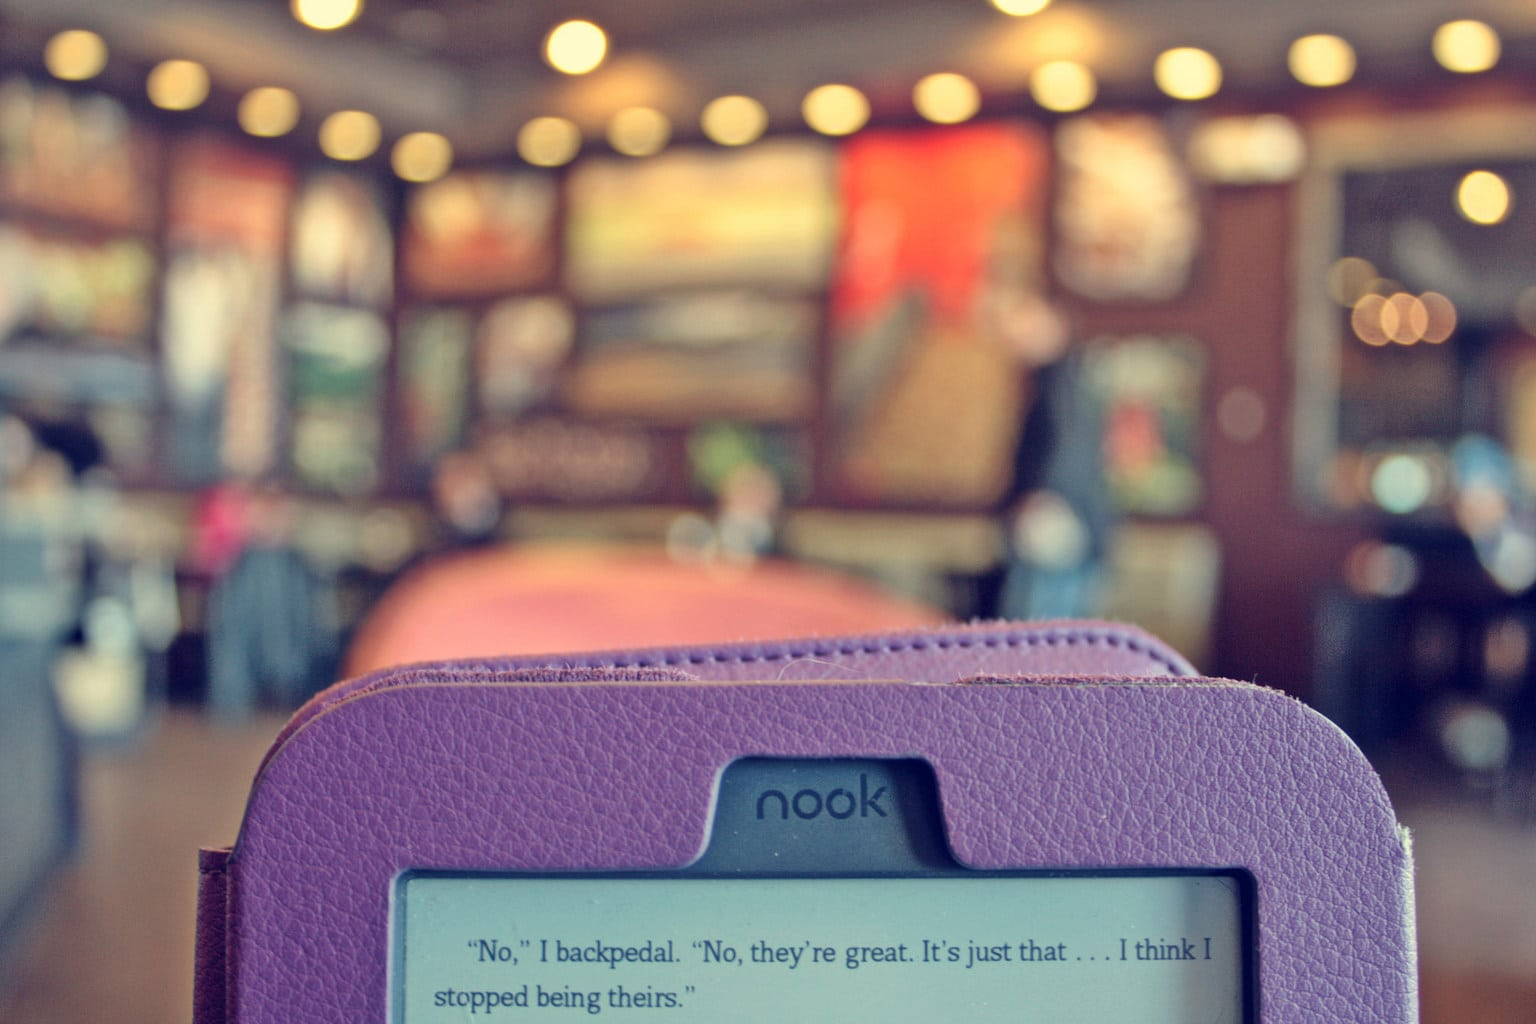 Purple nook tablet reader with a book opened on the screen